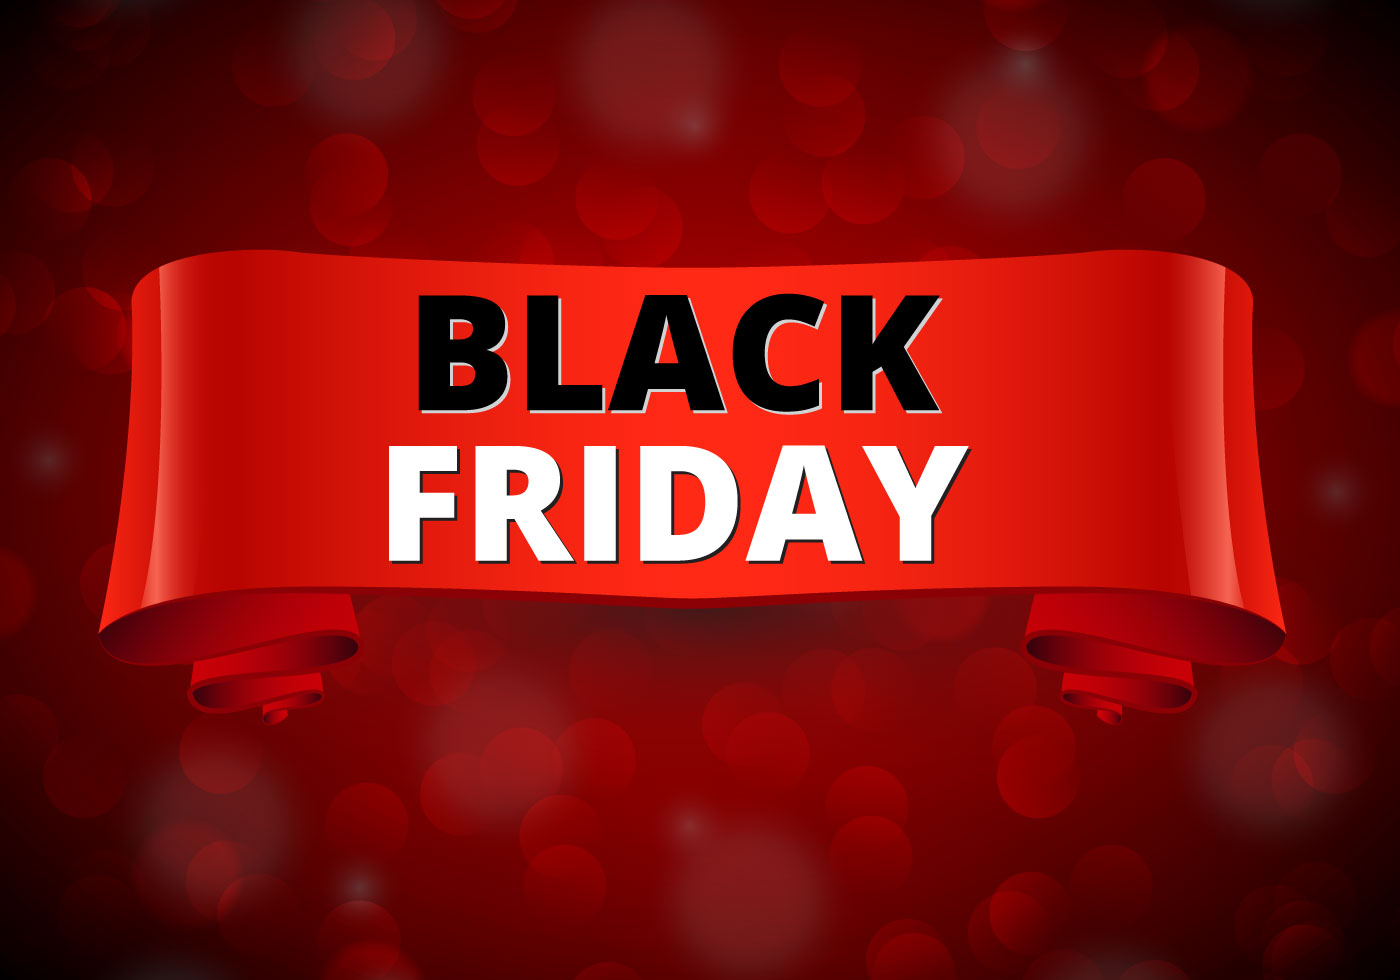 Back Friday Free Black Friday Vector Download Free Vector Art Stock